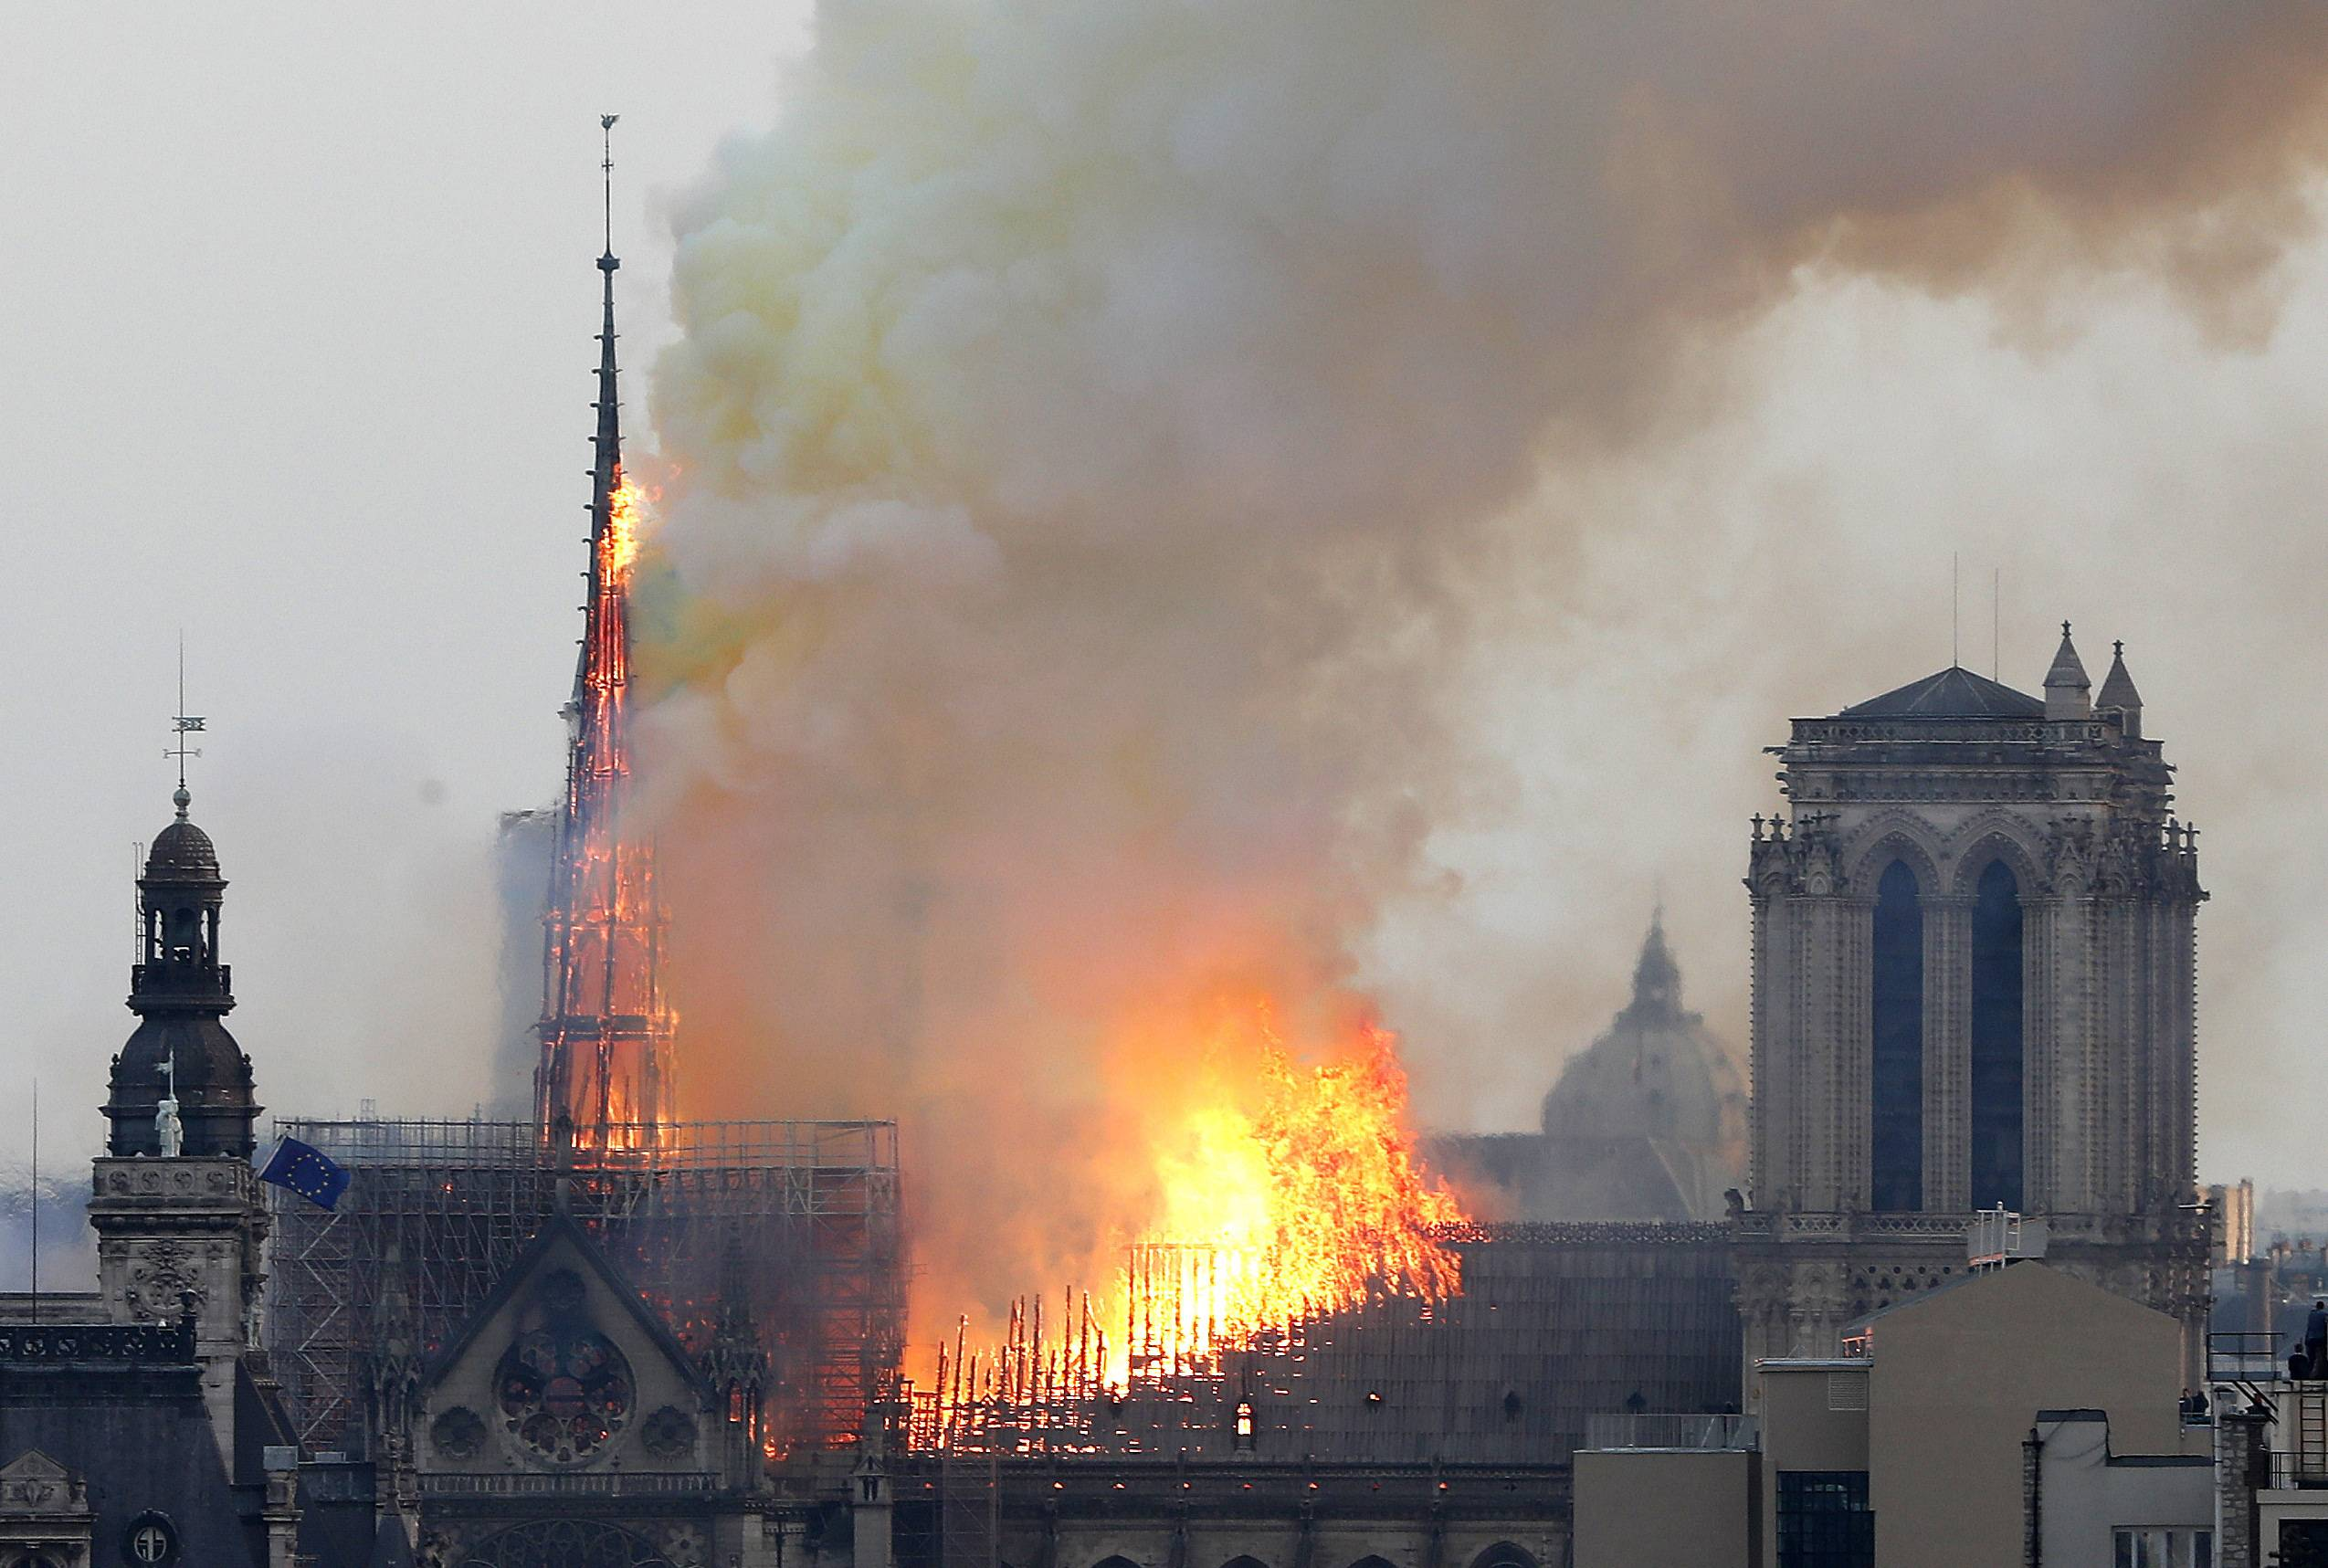 Facts Matter: Fake photo used to push theory terrorists set fire at Notre Dame